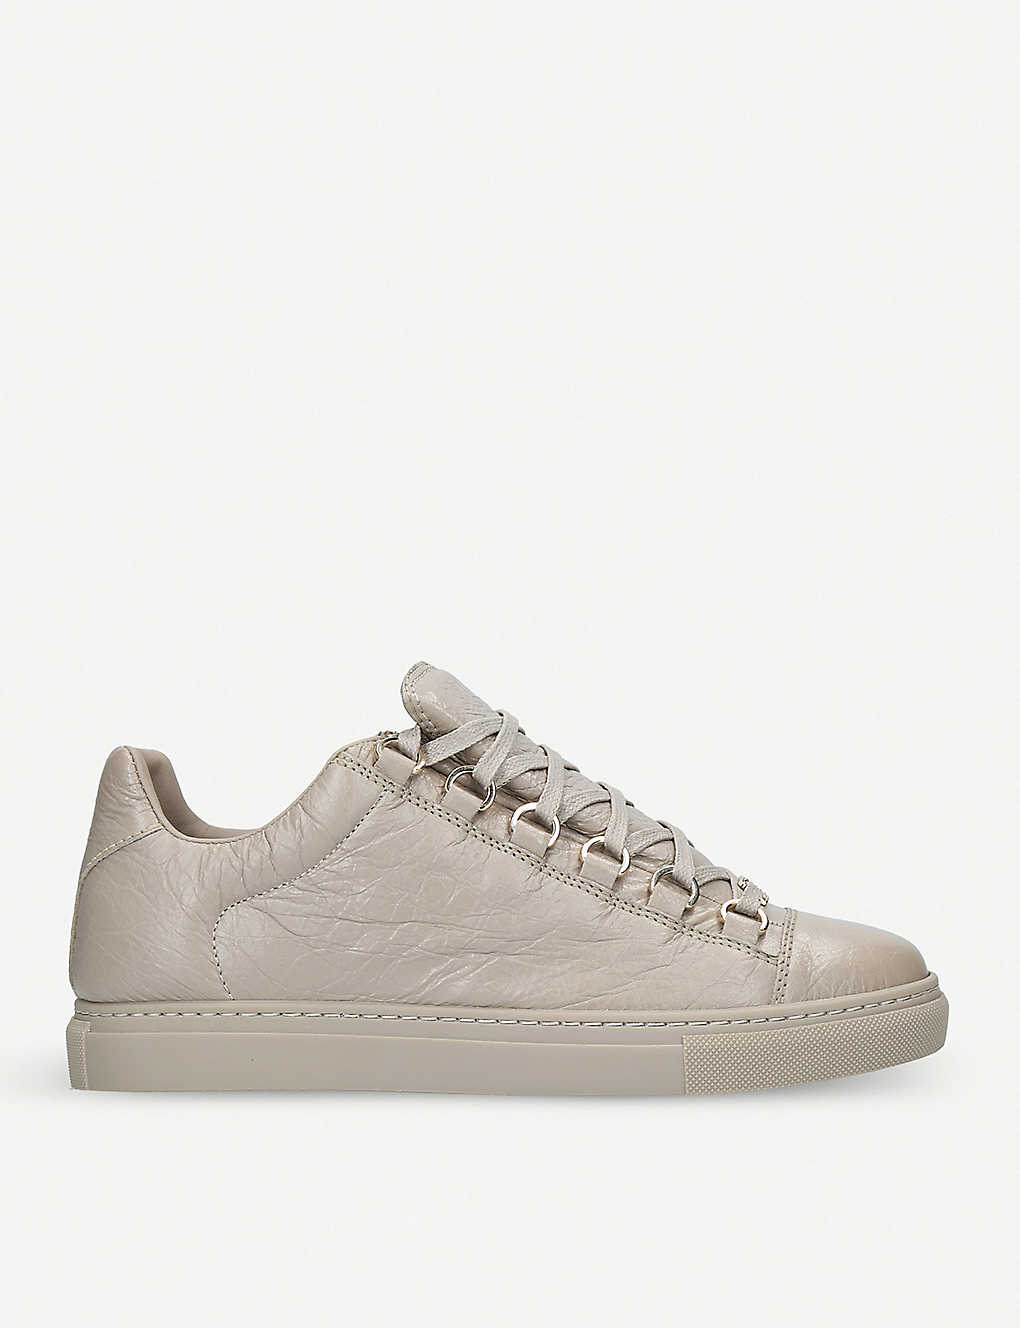 84712c12295d BALENCIAGA - Arena leather low-top trainers